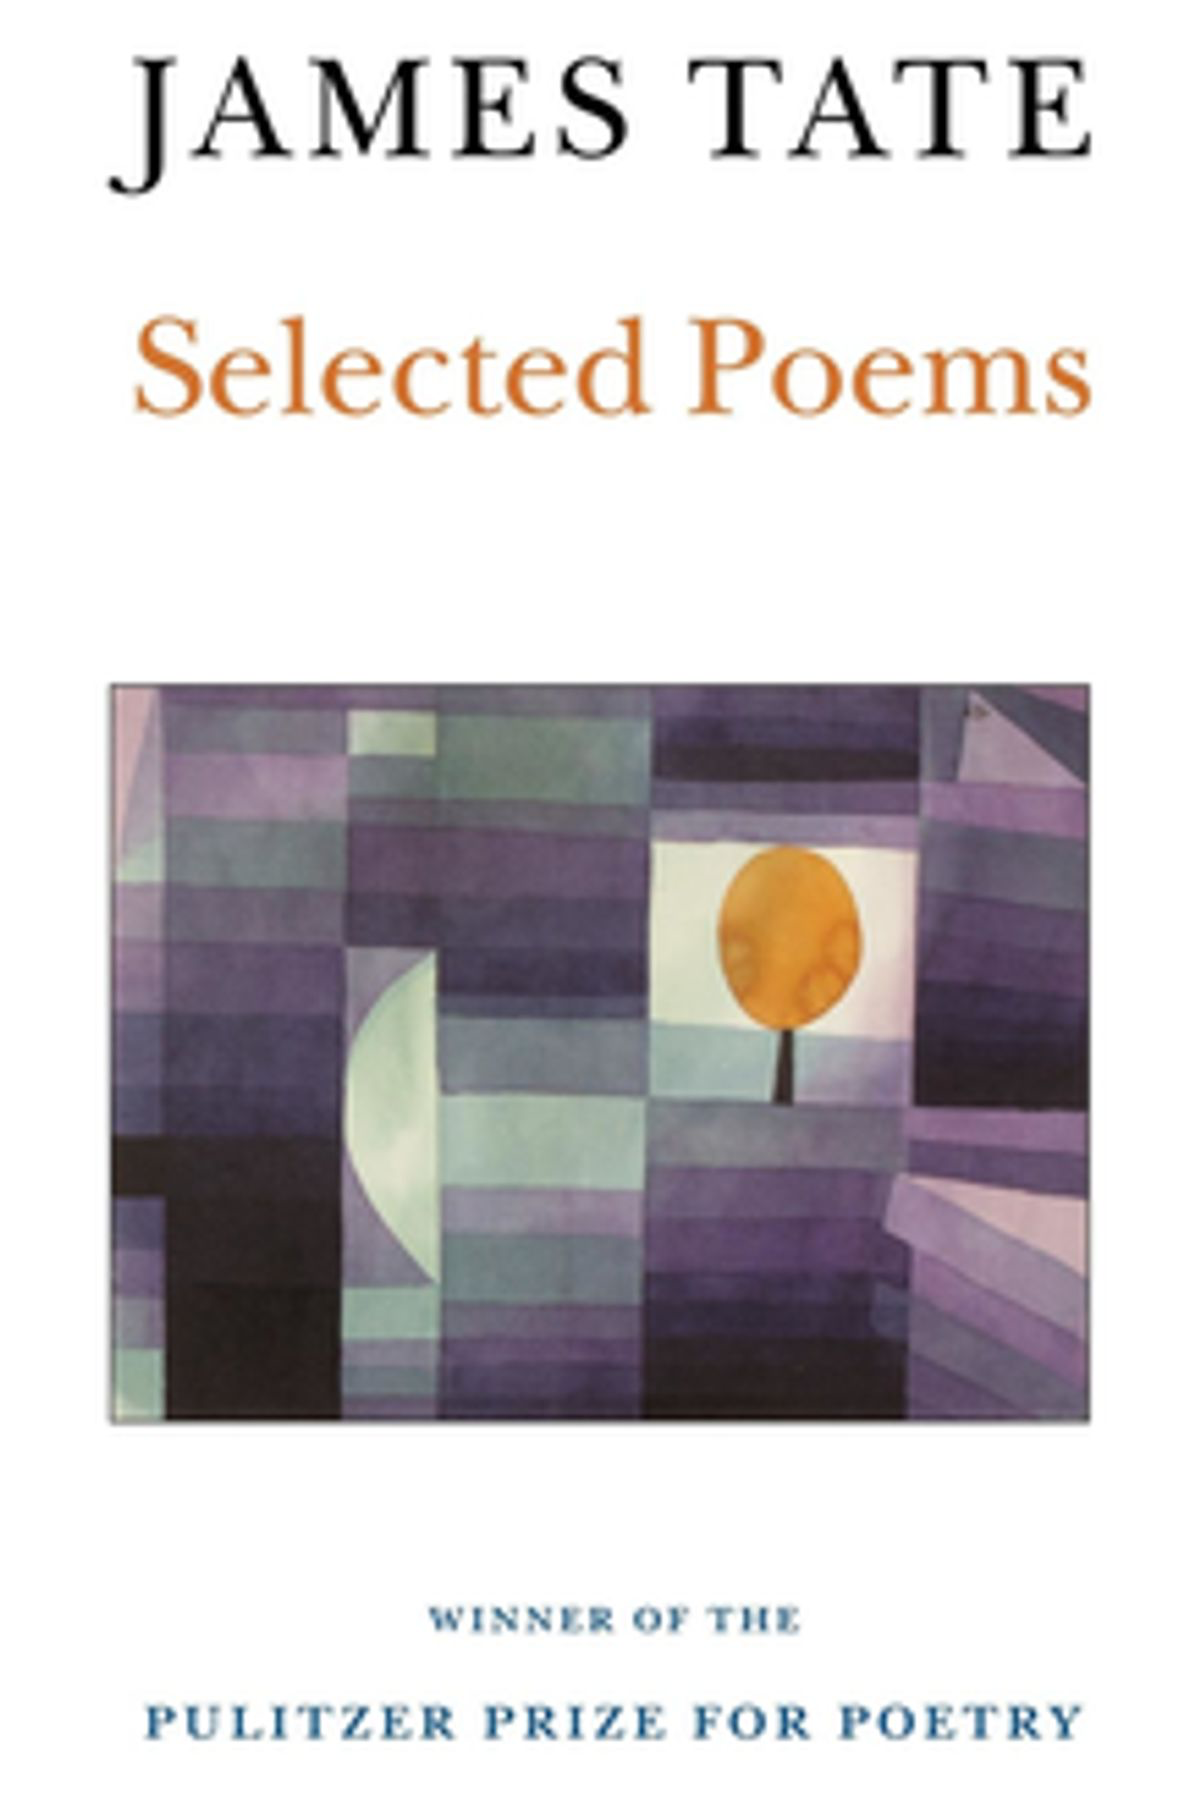 James Tate: Selected Poems